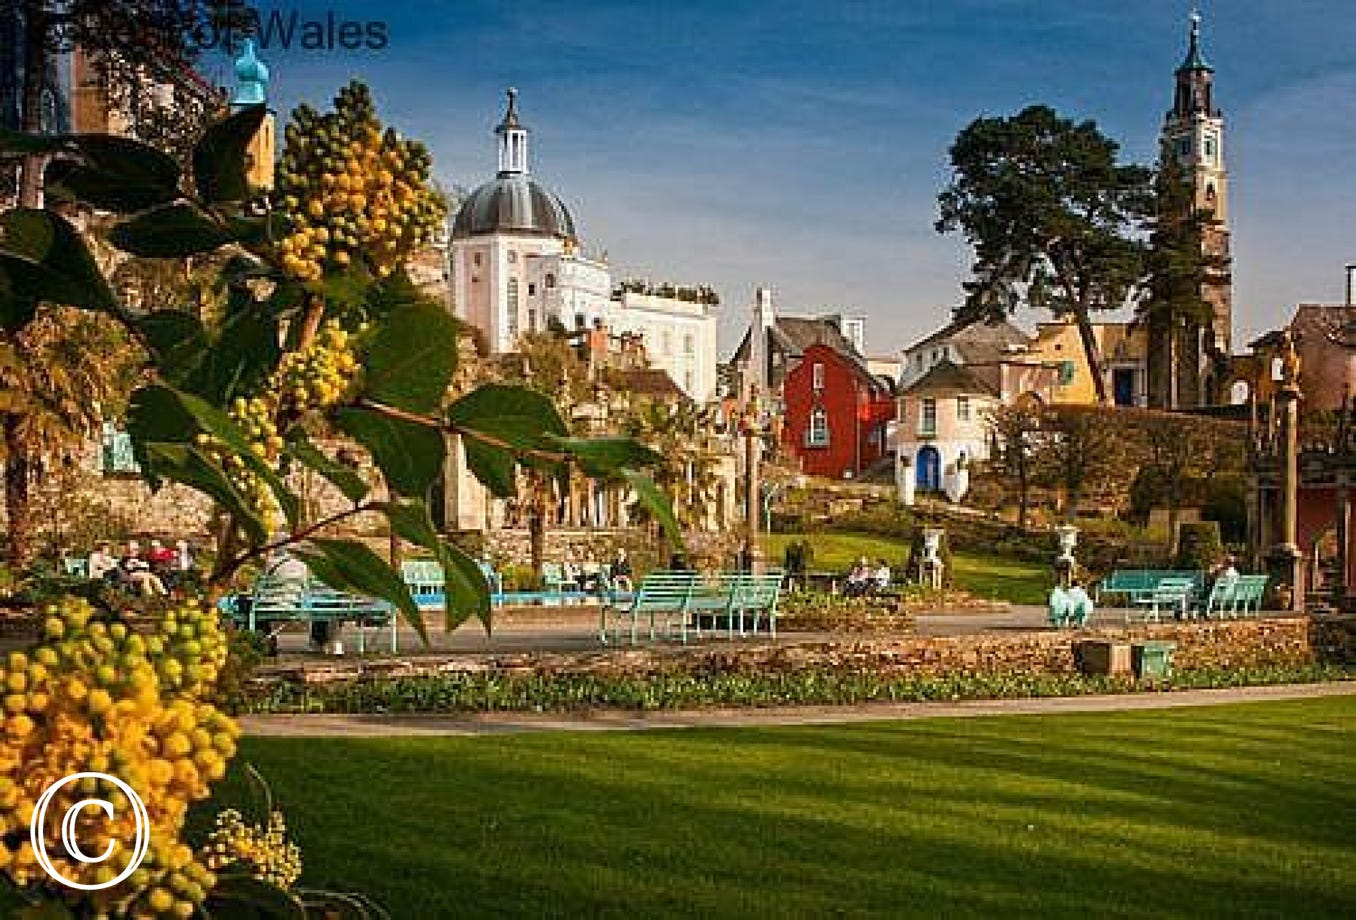 The classic Italian village and gardens of Portmeirion, 10 miles away